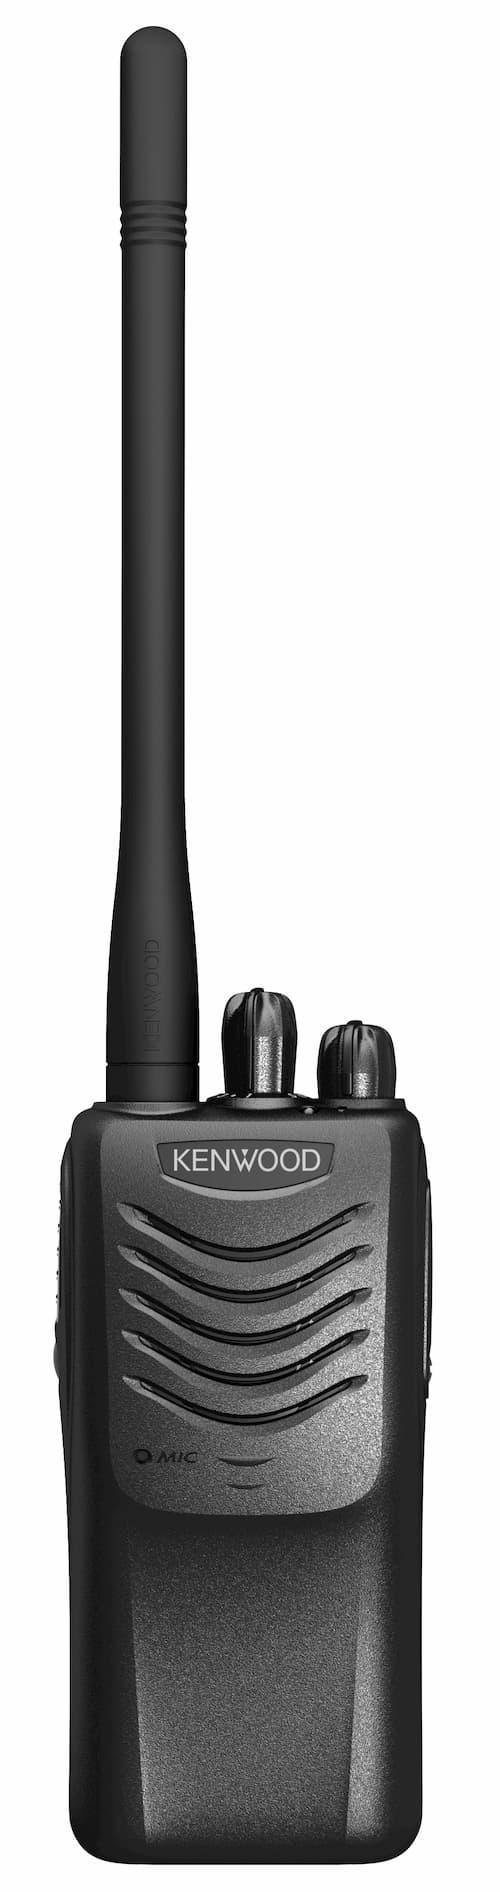 Kenwood TK 3302 radio in black